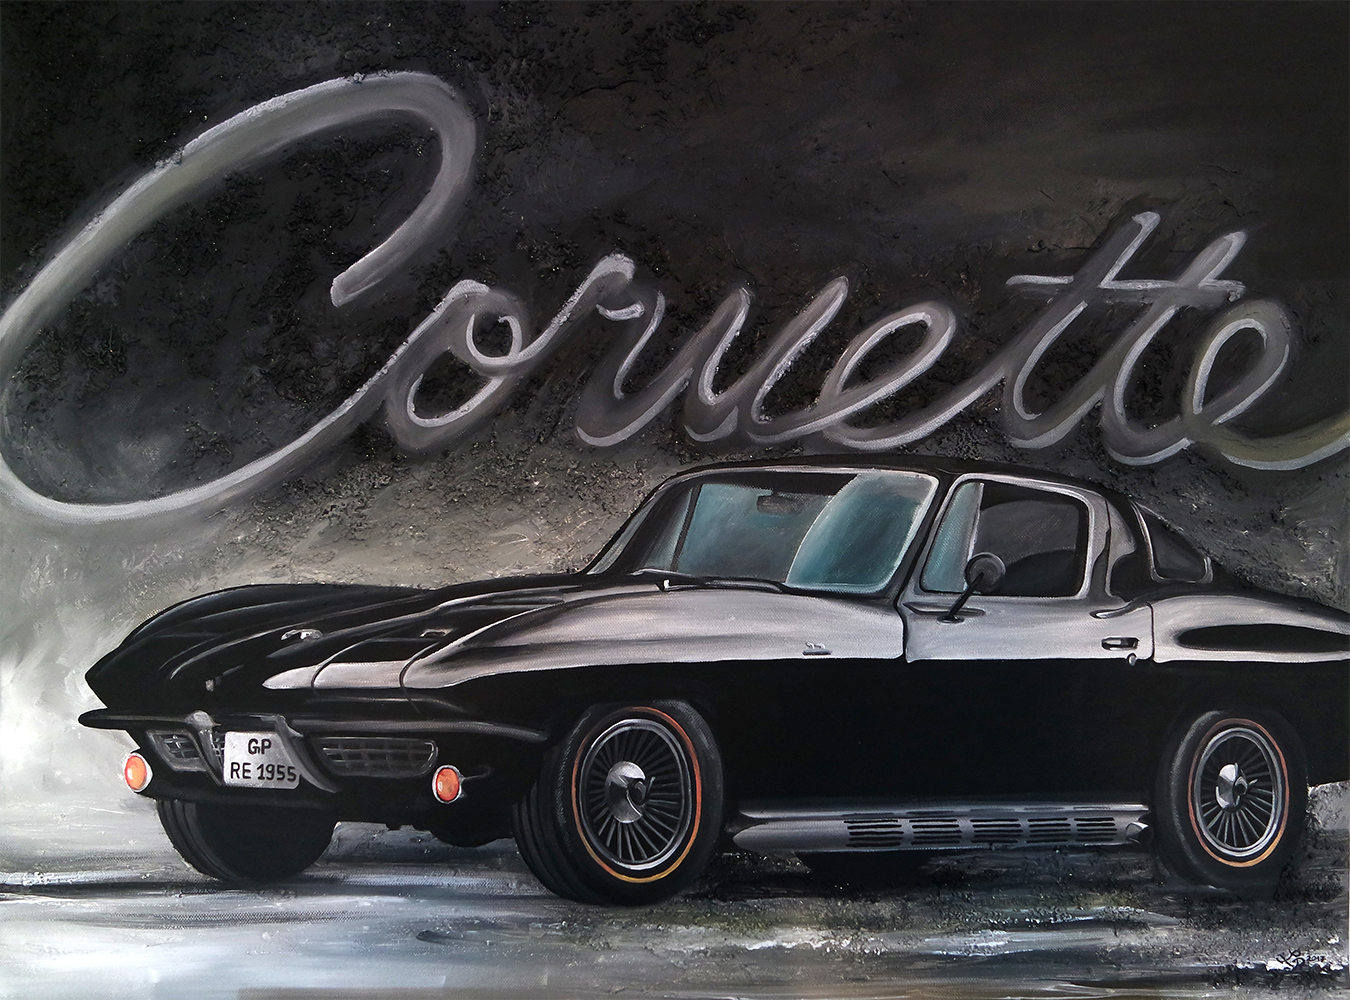 Chevrolet Corvette Sting Ray (90 x 70 cm)